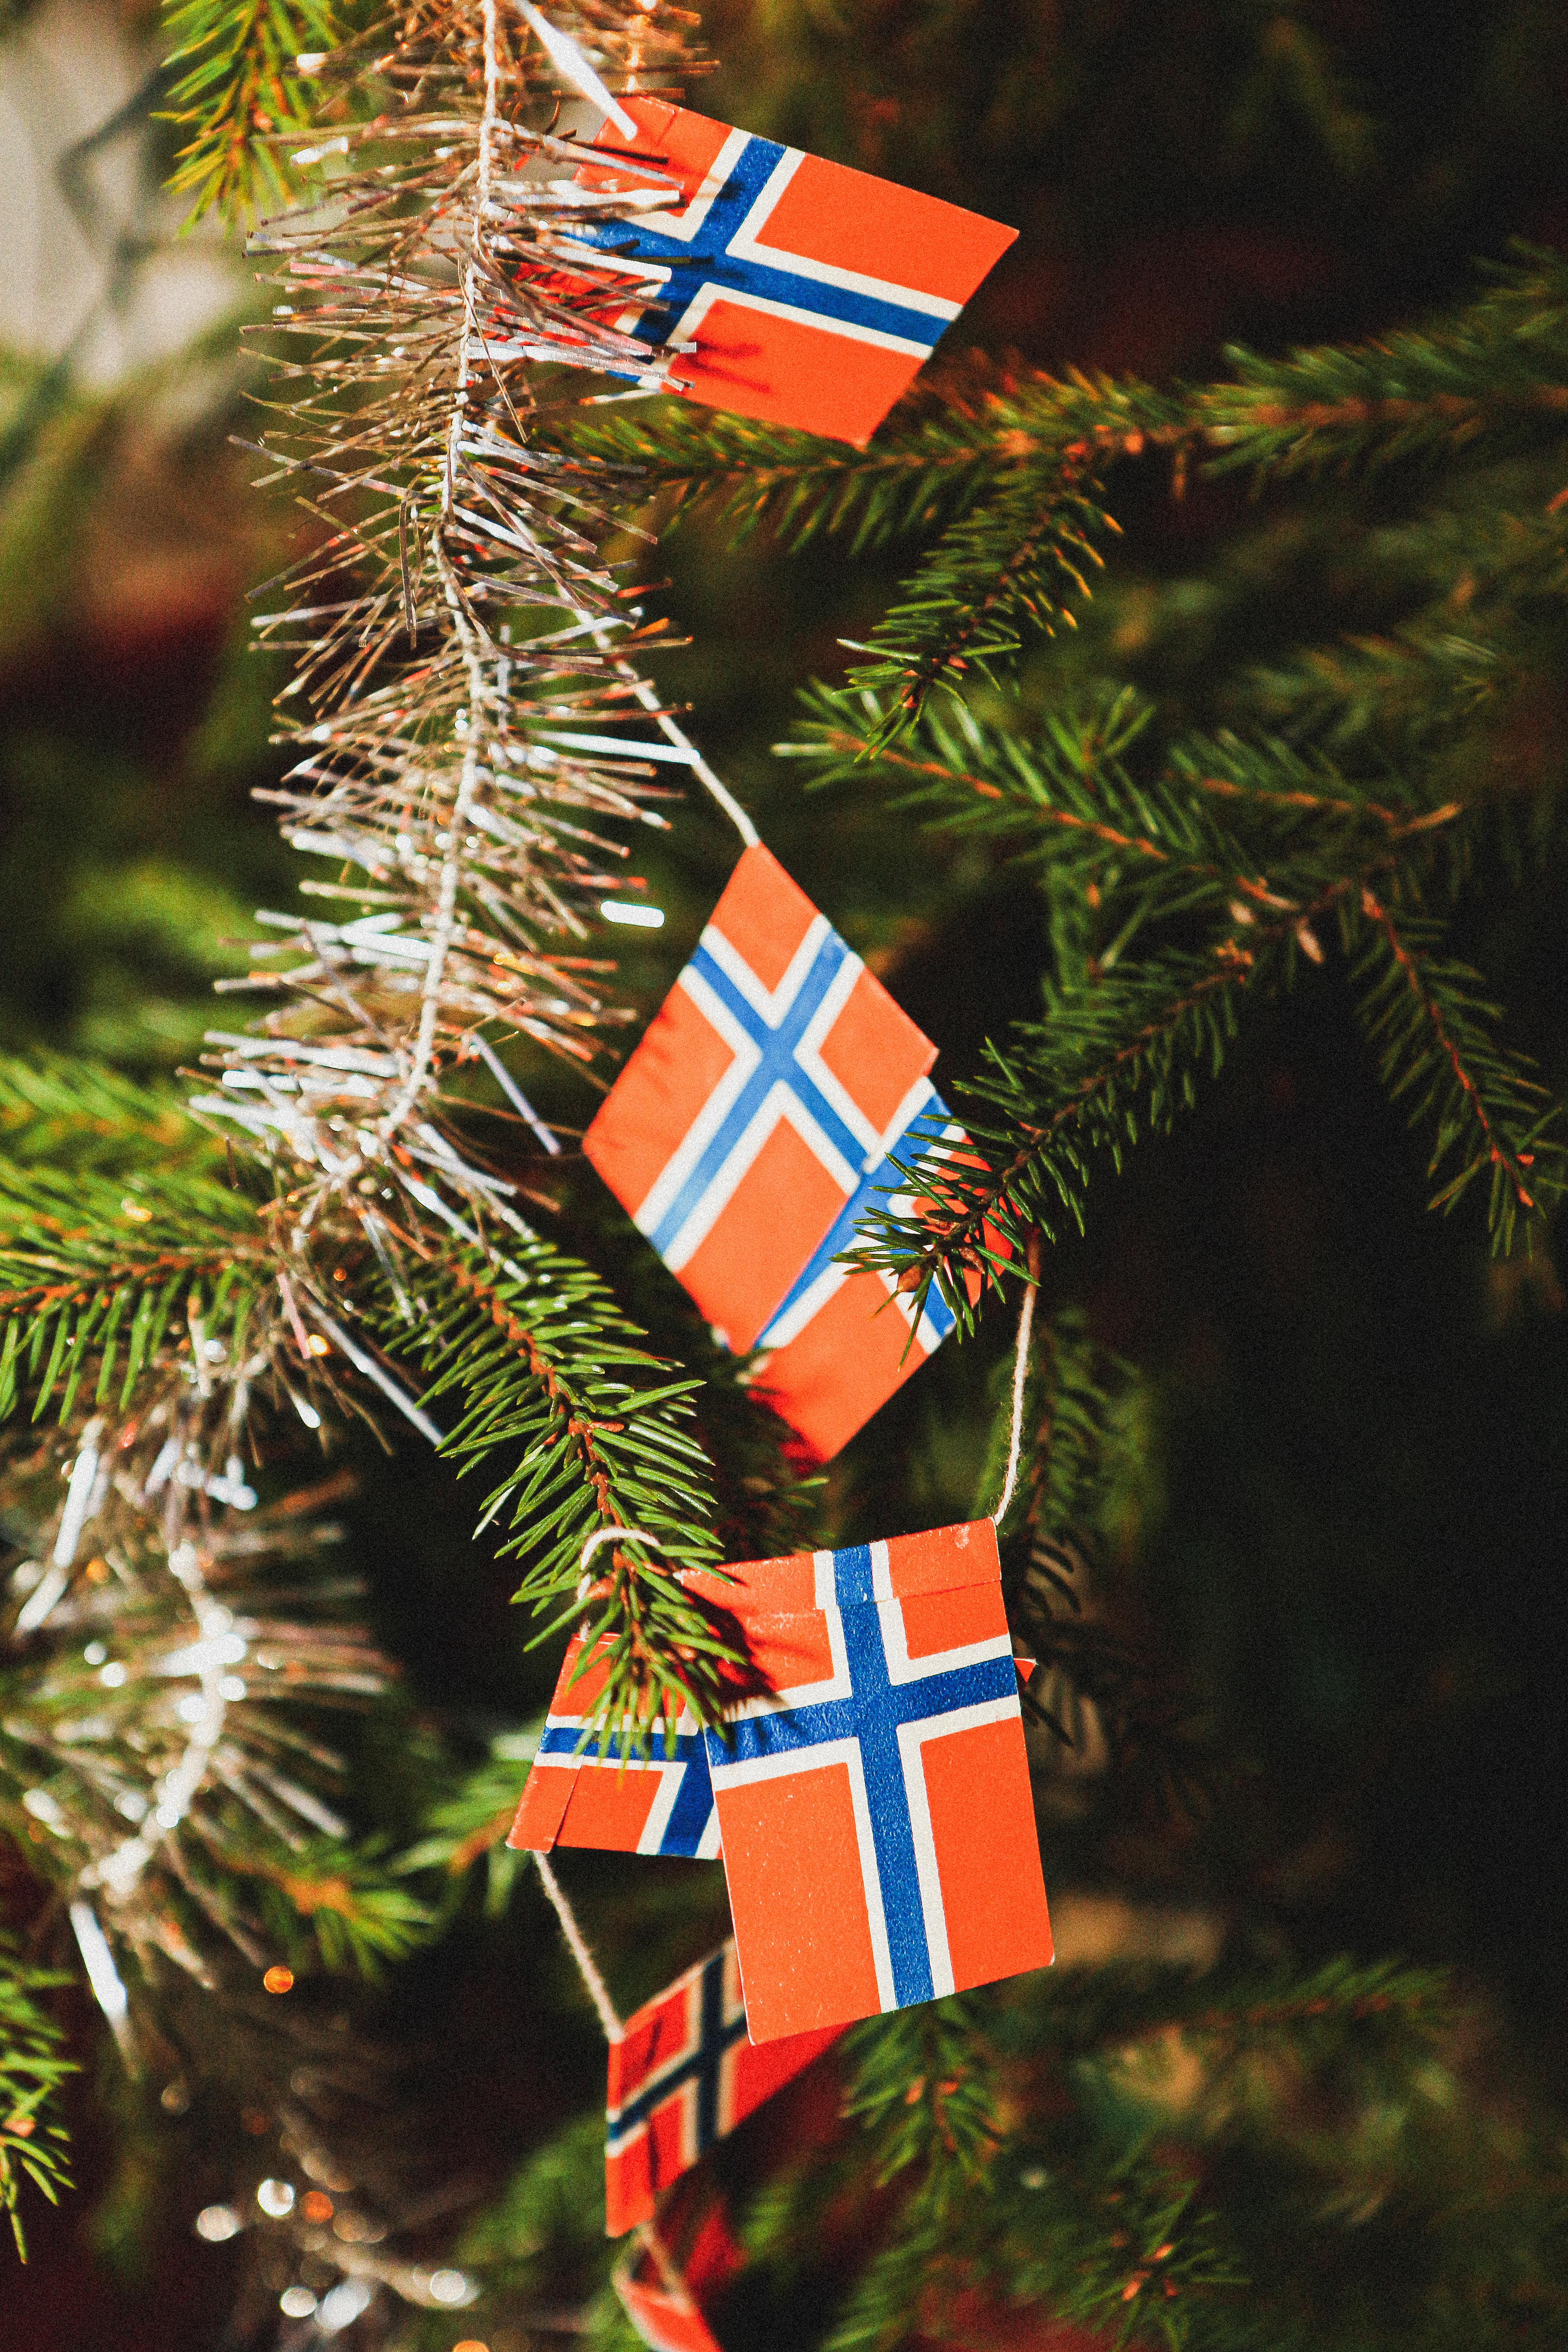 File:Norwegian flags on Christmas tree.jpg - Wikimedia Commons